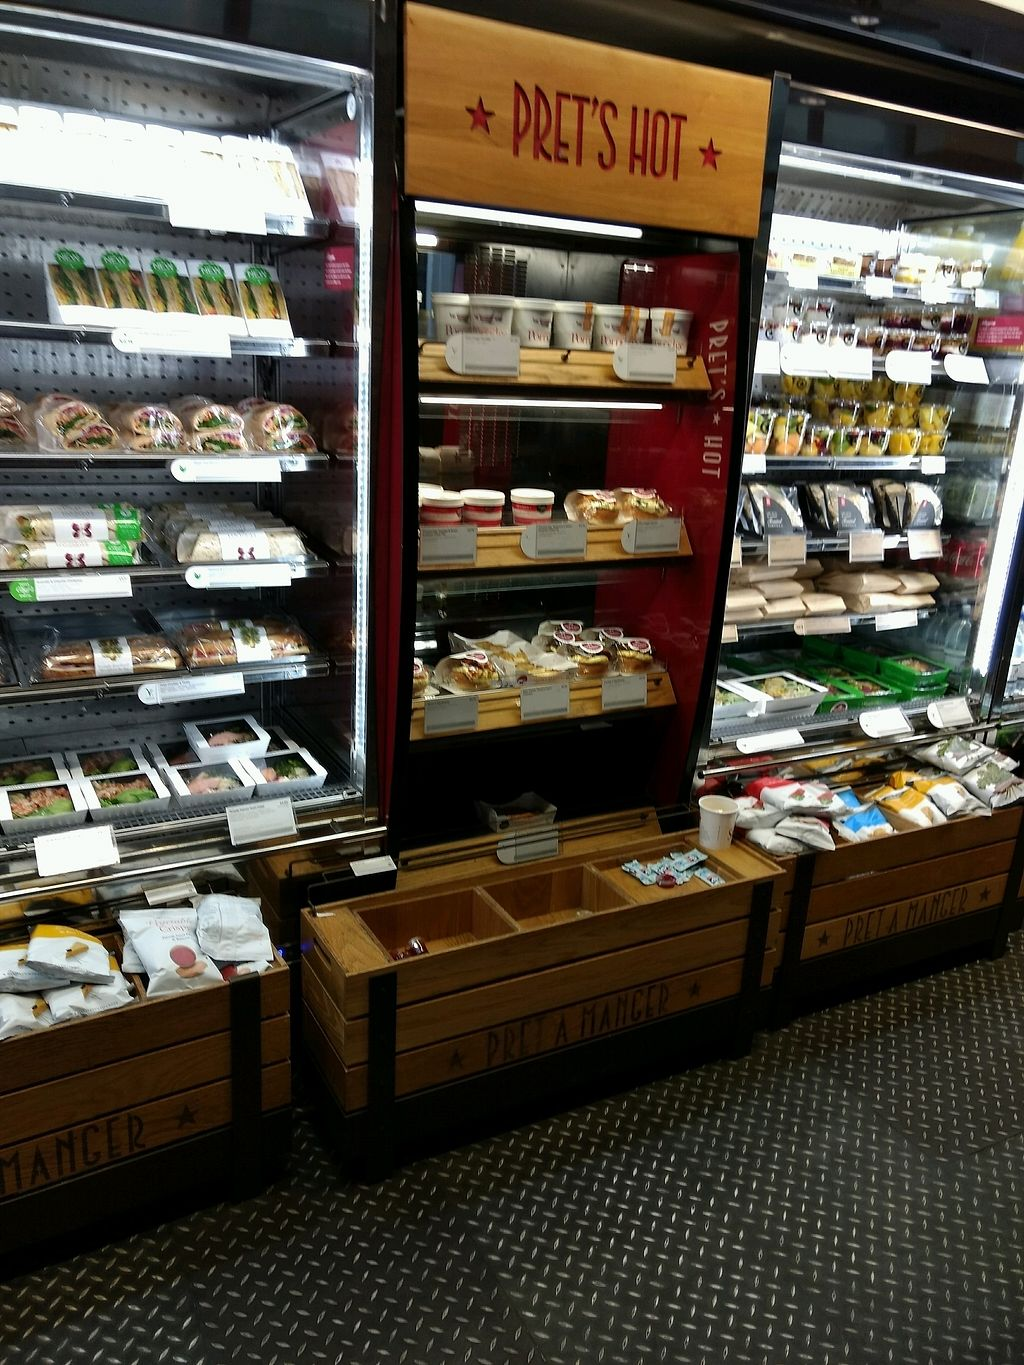 """Photo of Pret A Manger - Great Tower St  by <a href=""""/members/profile/craigmc"""">craigmc</a> <br/>breakfast <br/> October 17, 2017  - <a href='/contact/abuse/image/74560/316029'>Report</a>"""